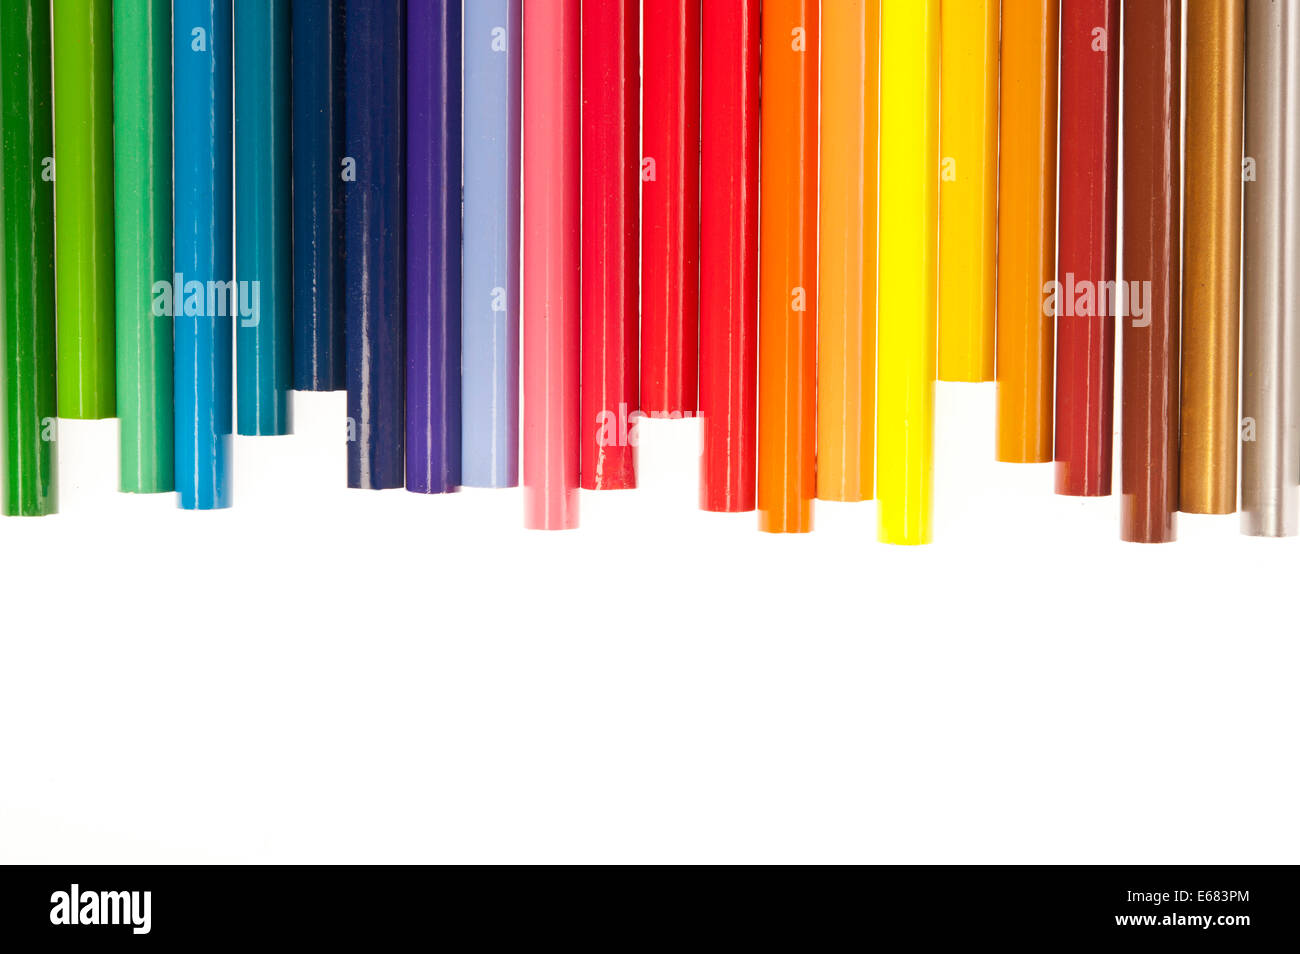 colouring pencils, bottom side - Stock Image